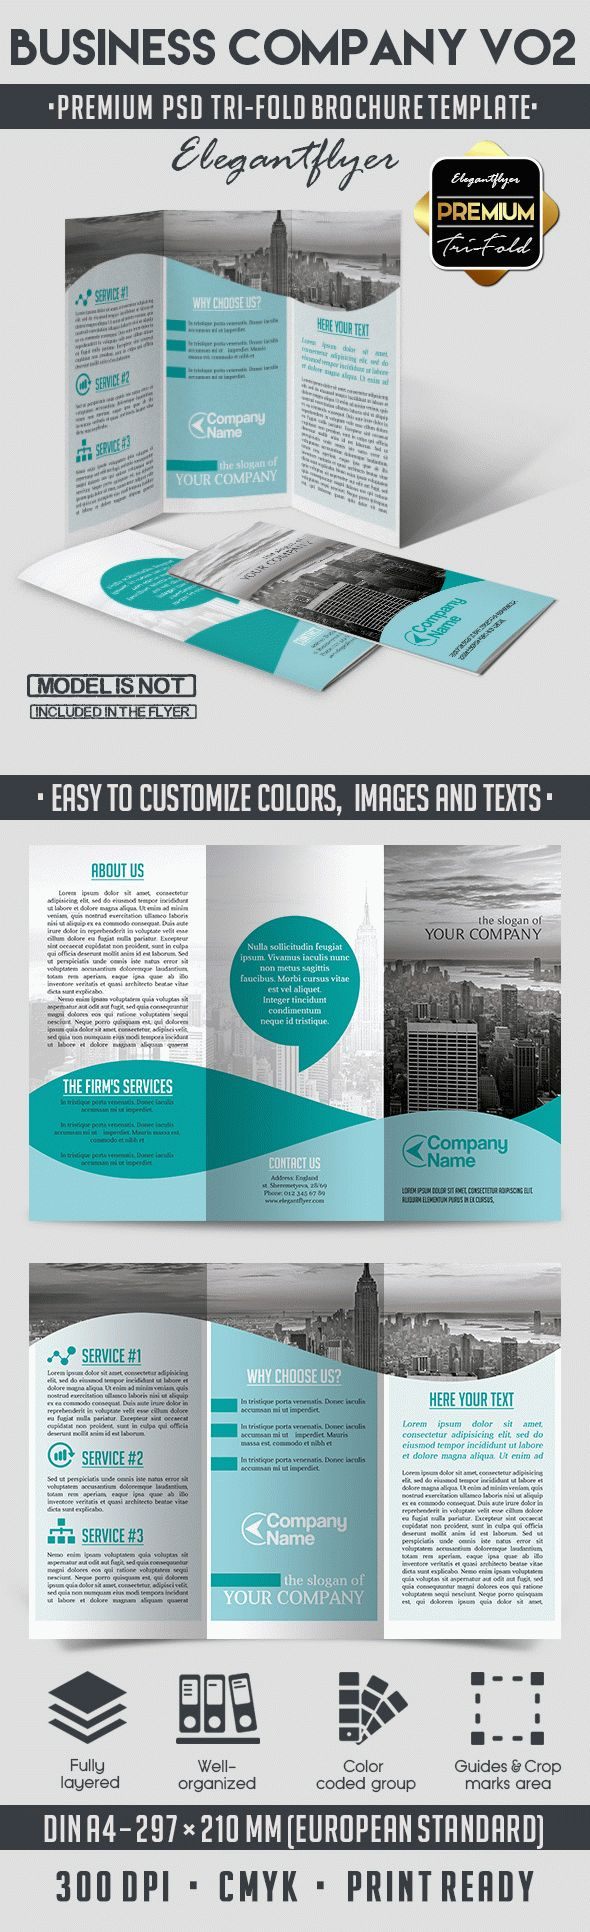 Business Company V02 – Tri-Fold Brochure PSD Template